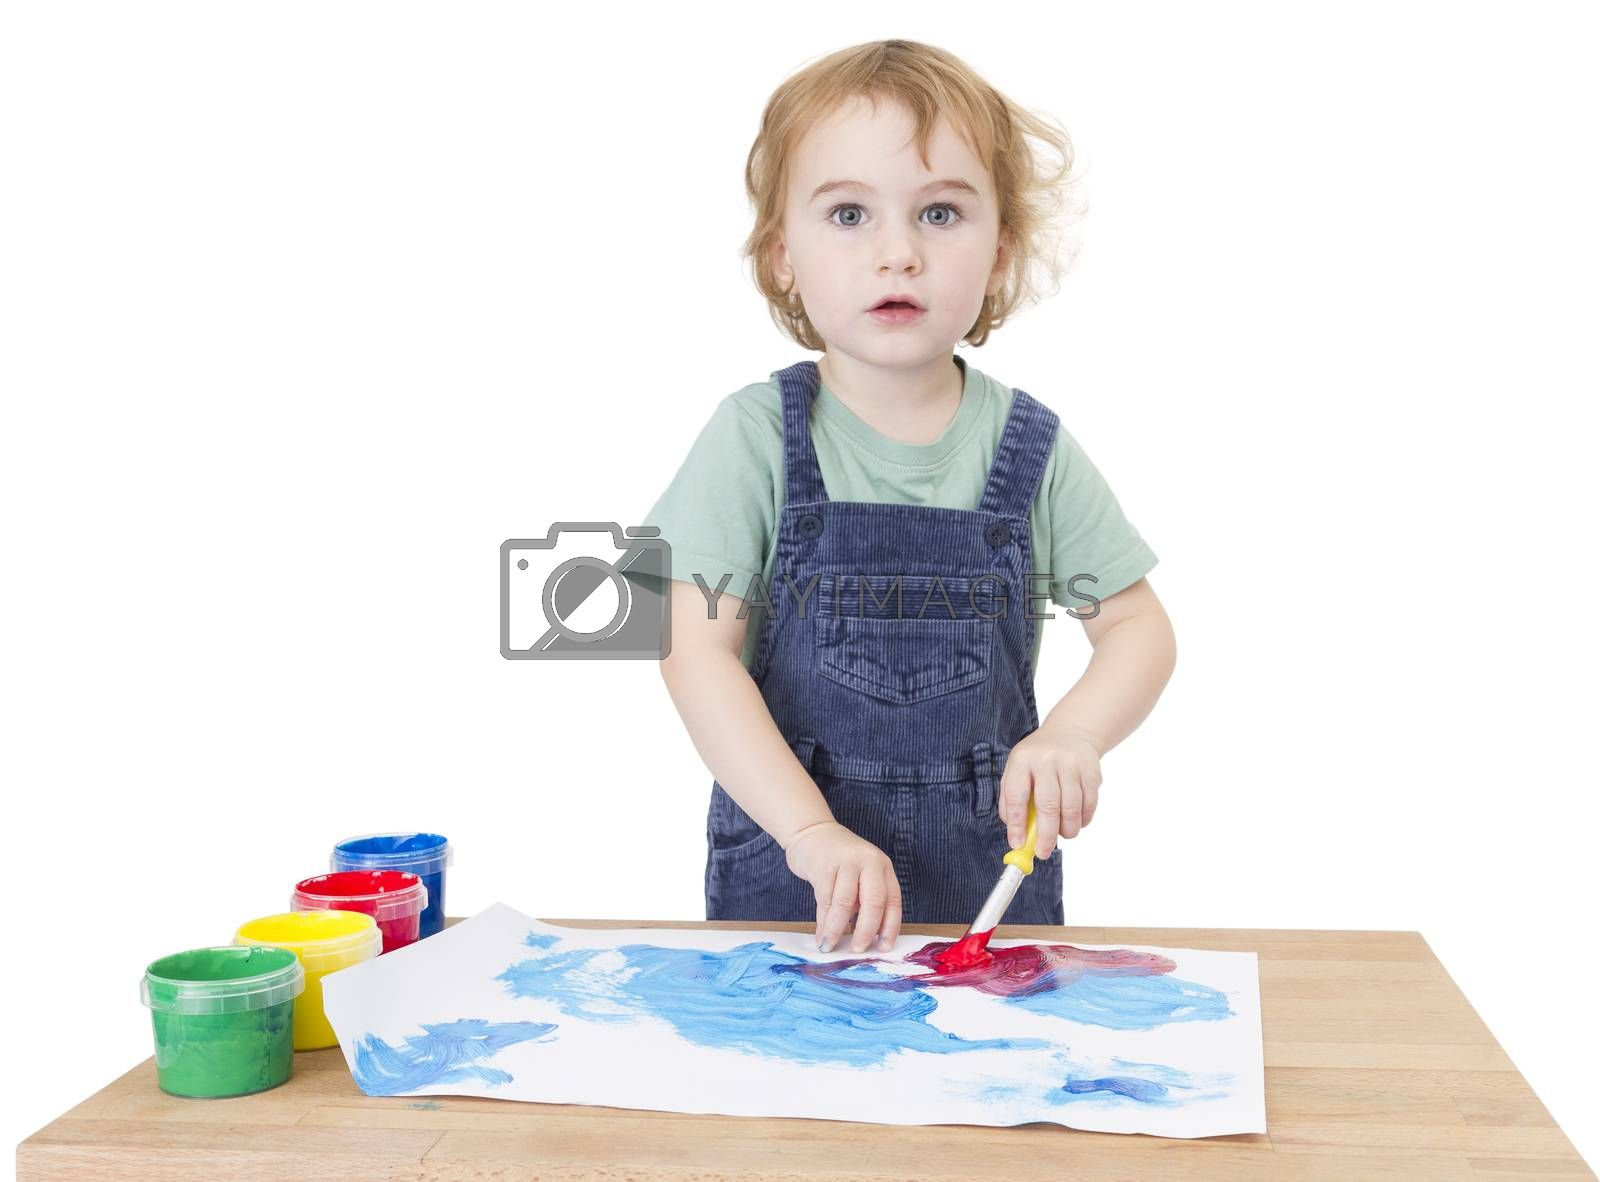 cute girl painting on small desk in white background. studio shot